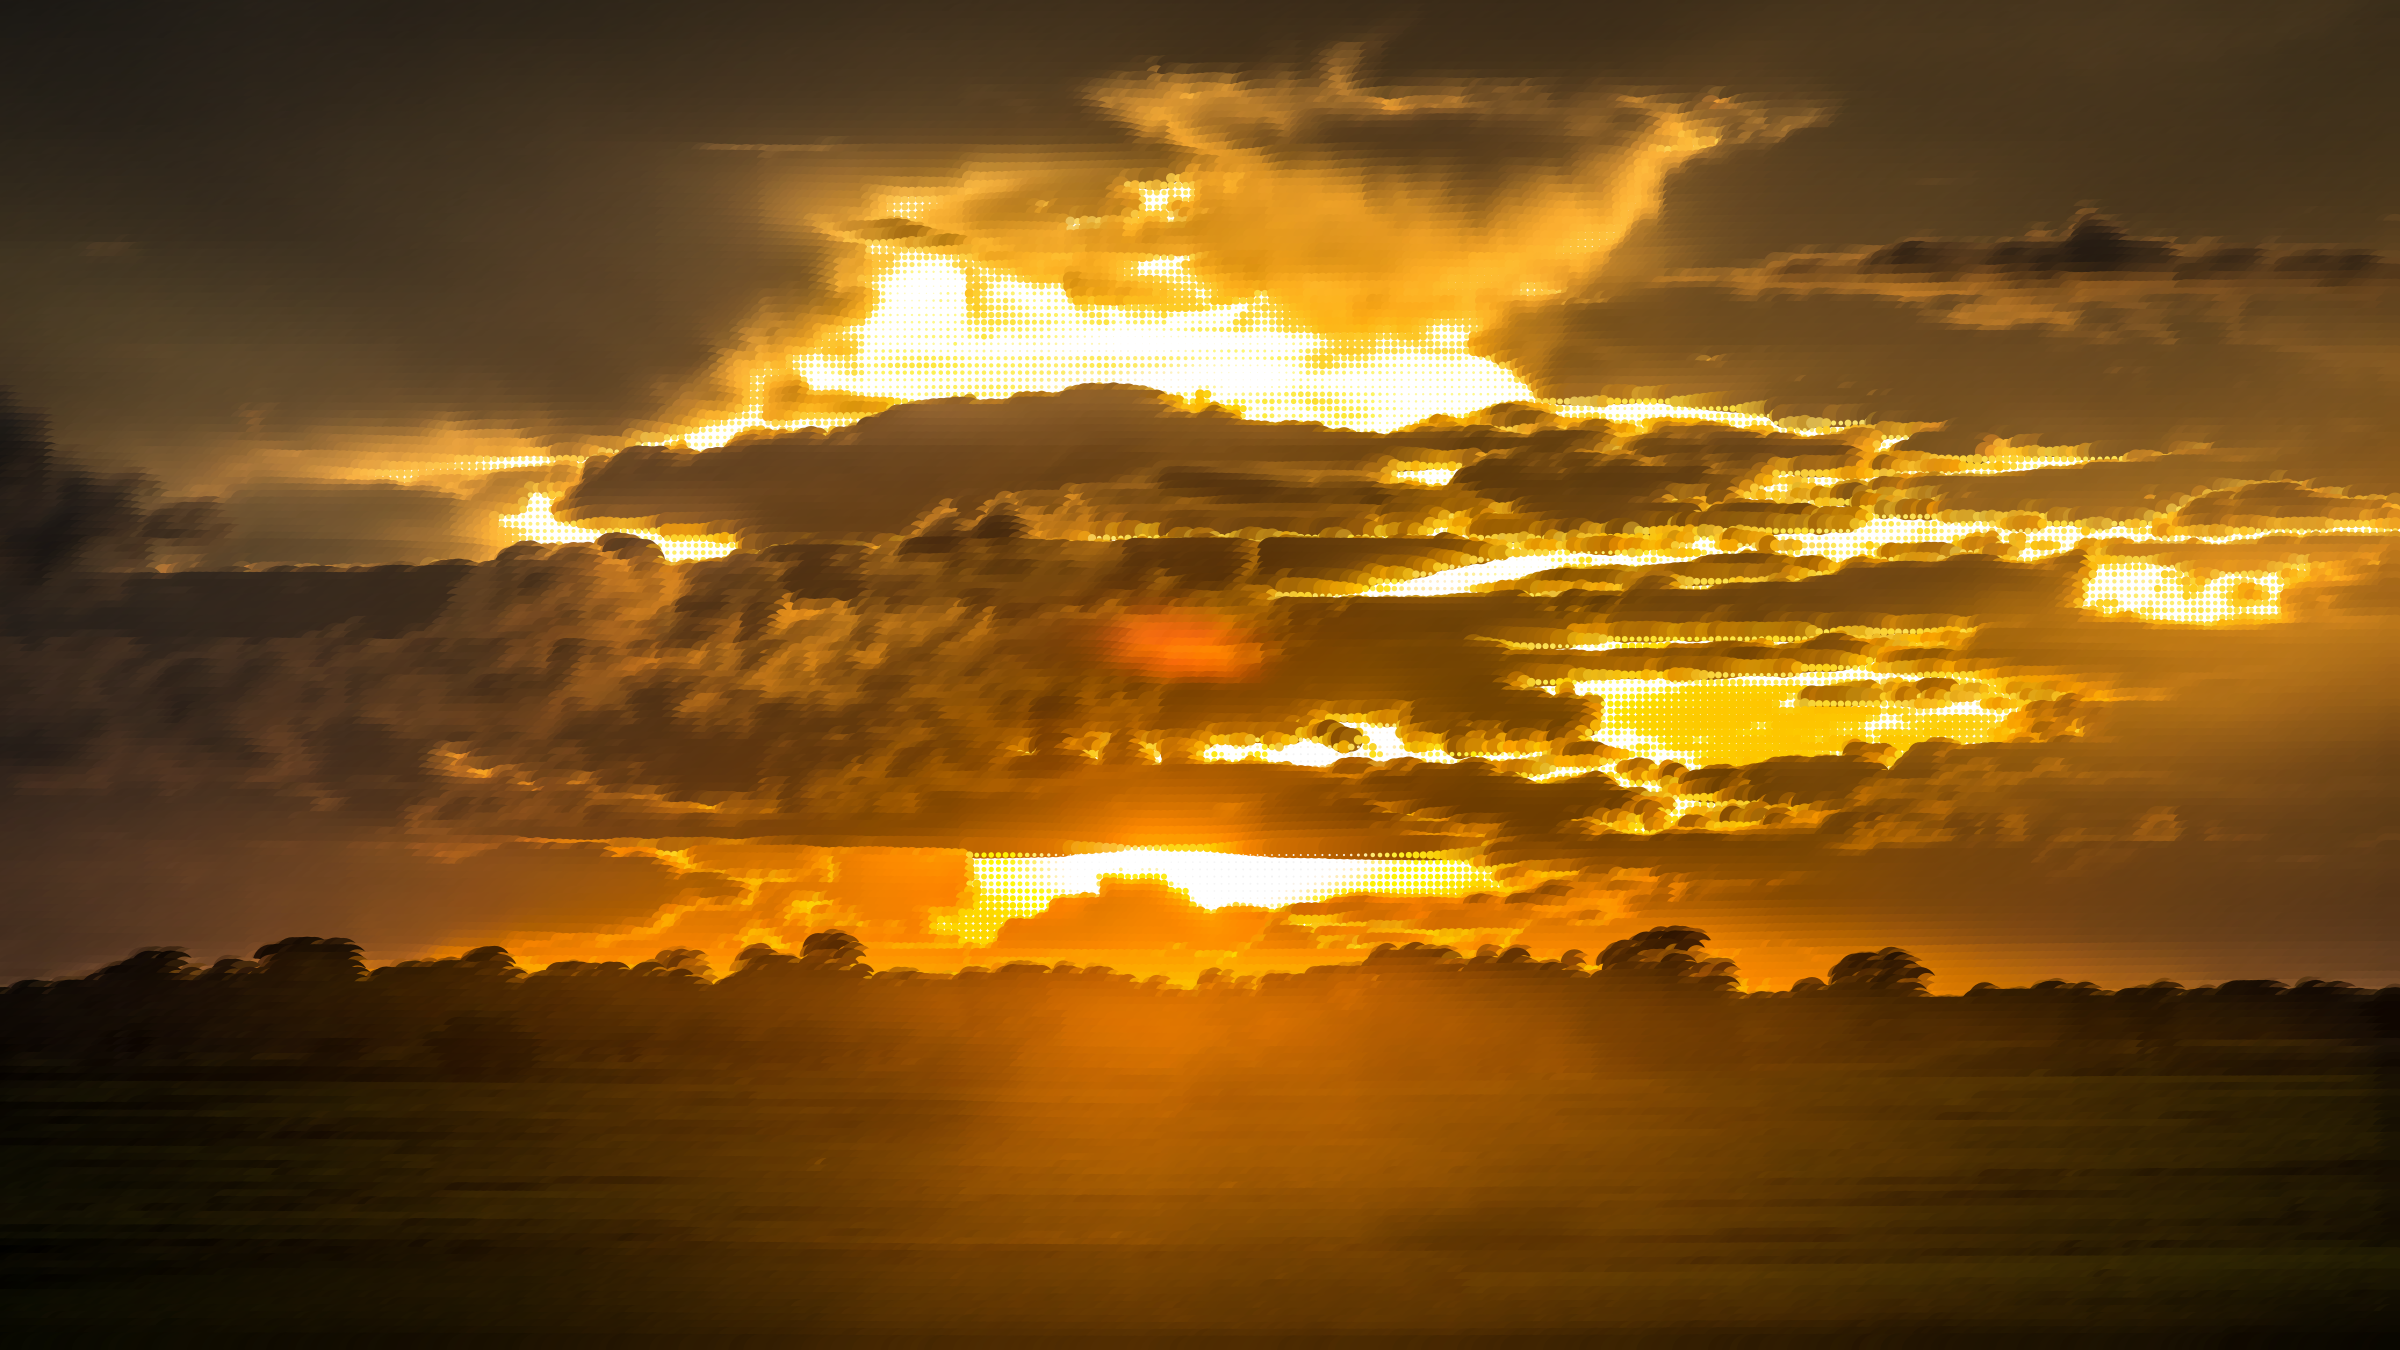 Surreal charred sky big. Sunset clipart sunset landscape